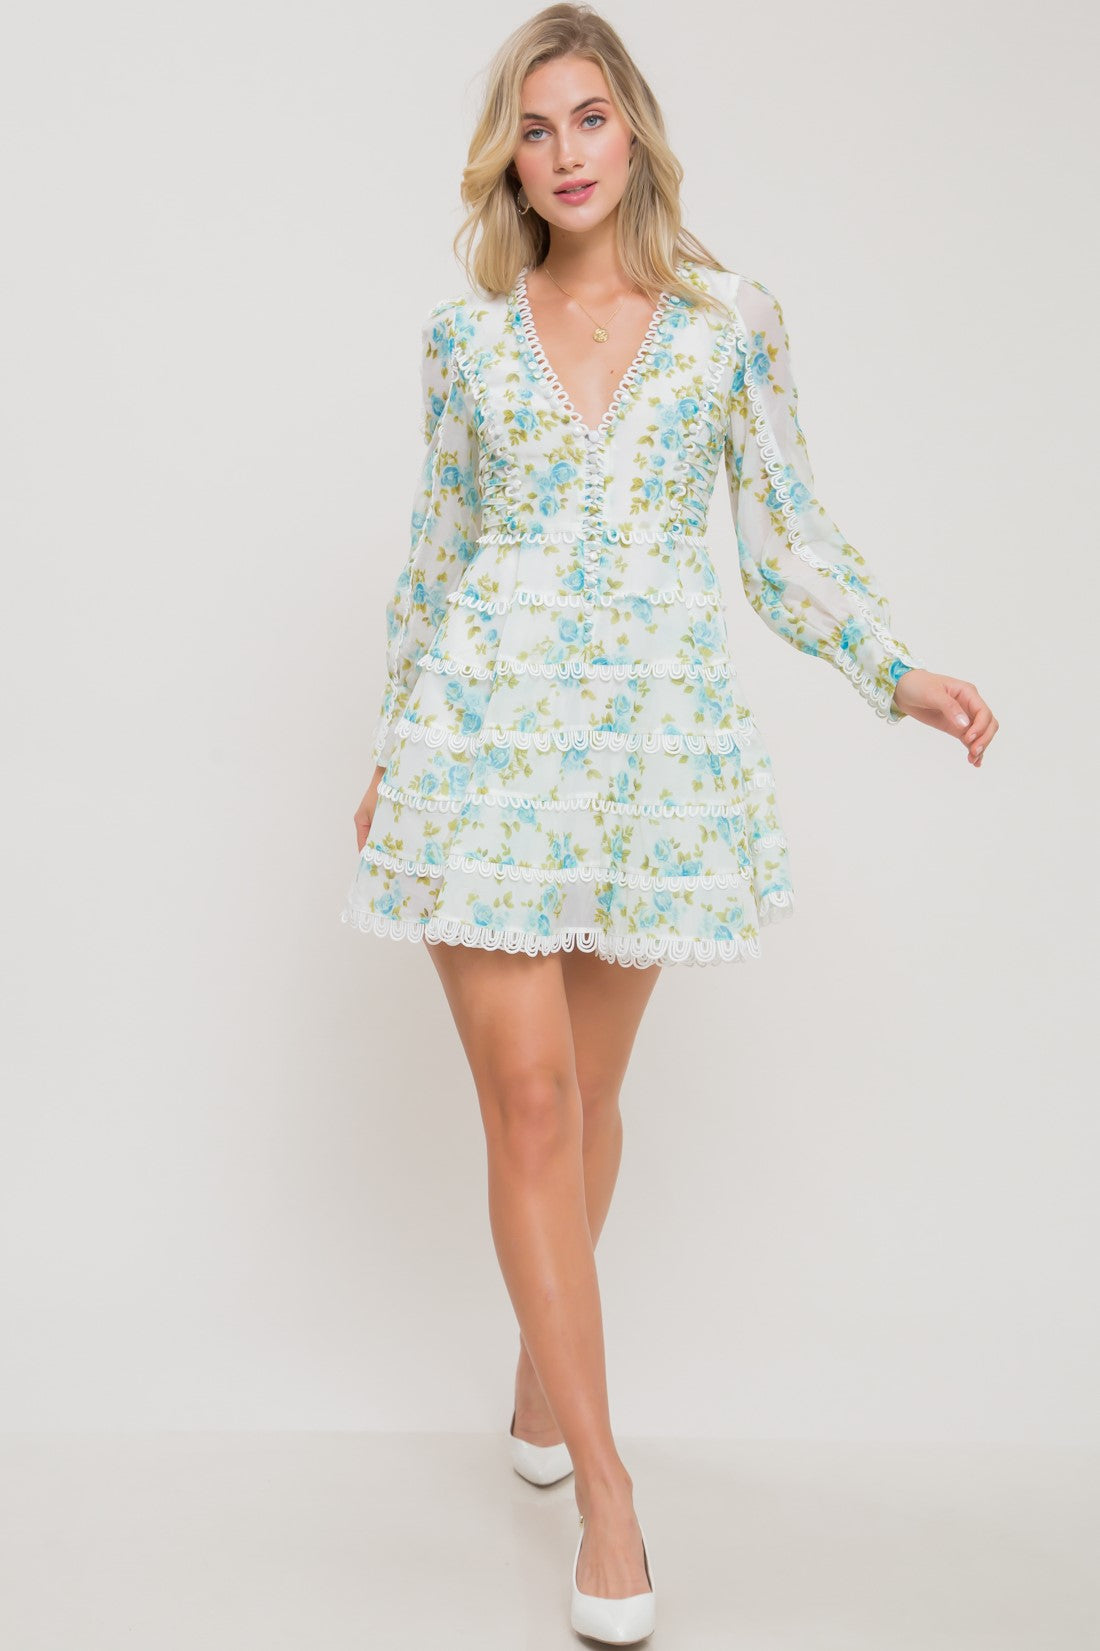 Secret Garden Floral Mini Dress - Geegeebae